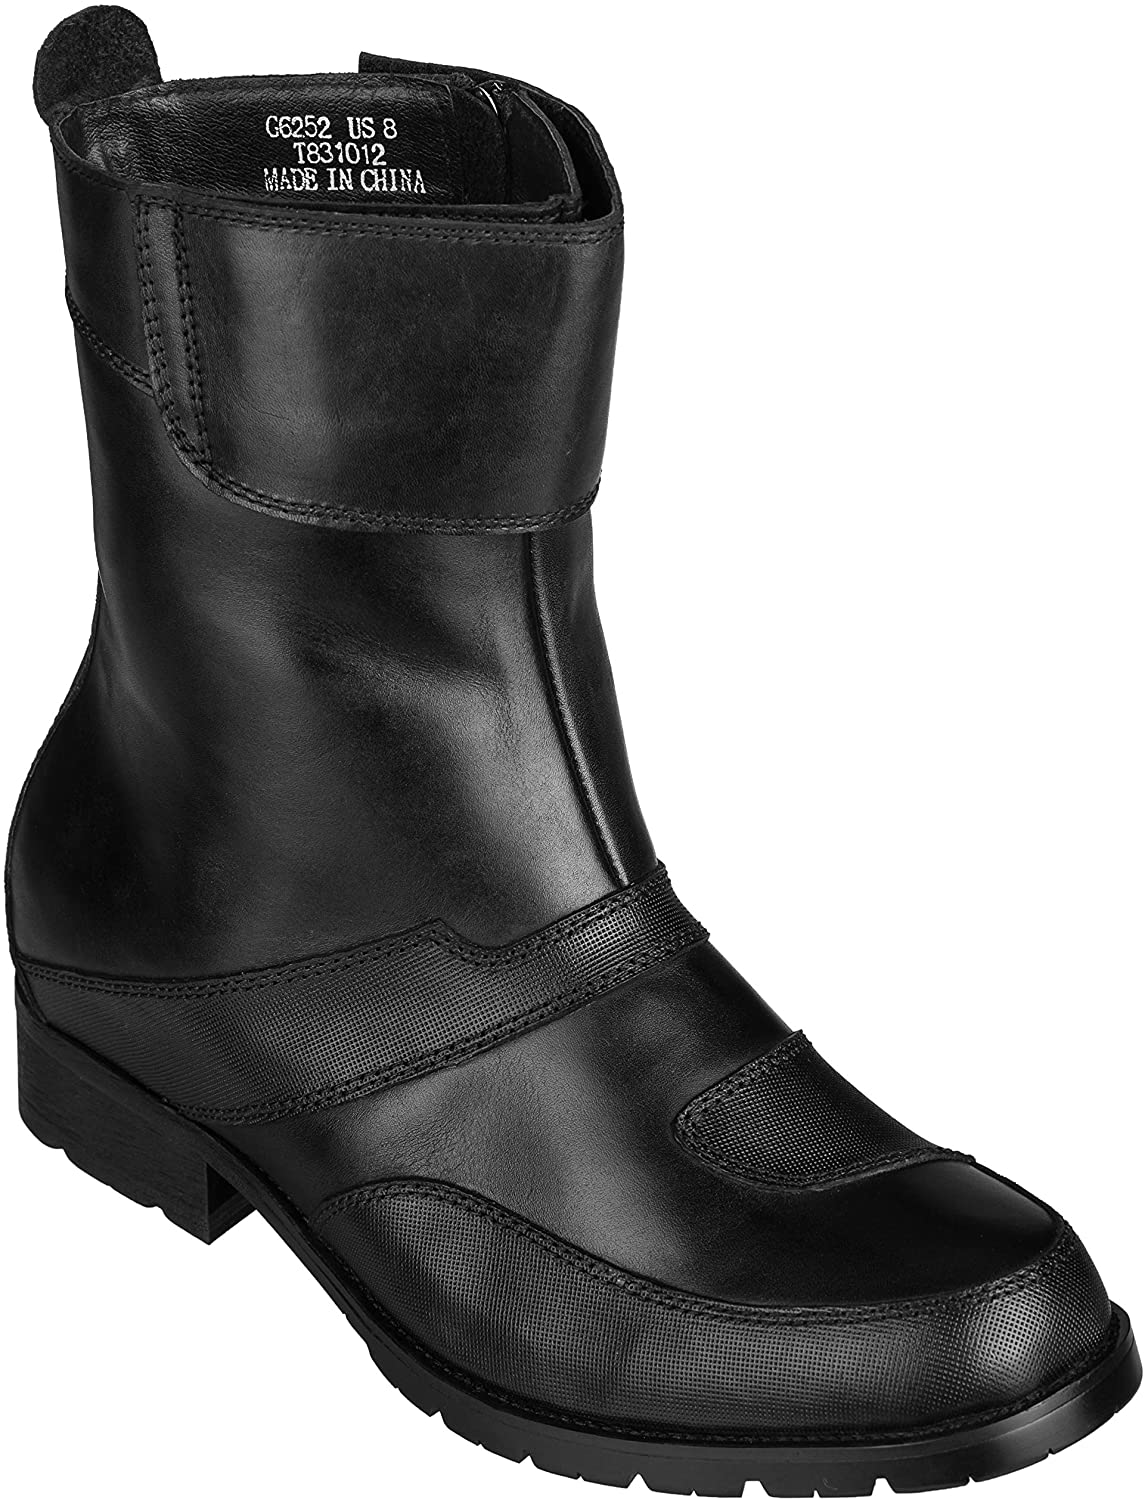 CALTO Men's Invisible Height Increasing Elevator Shoes - Black Leather Zipper High-top Biker Boots - 3.3 Inches Taller - G6252